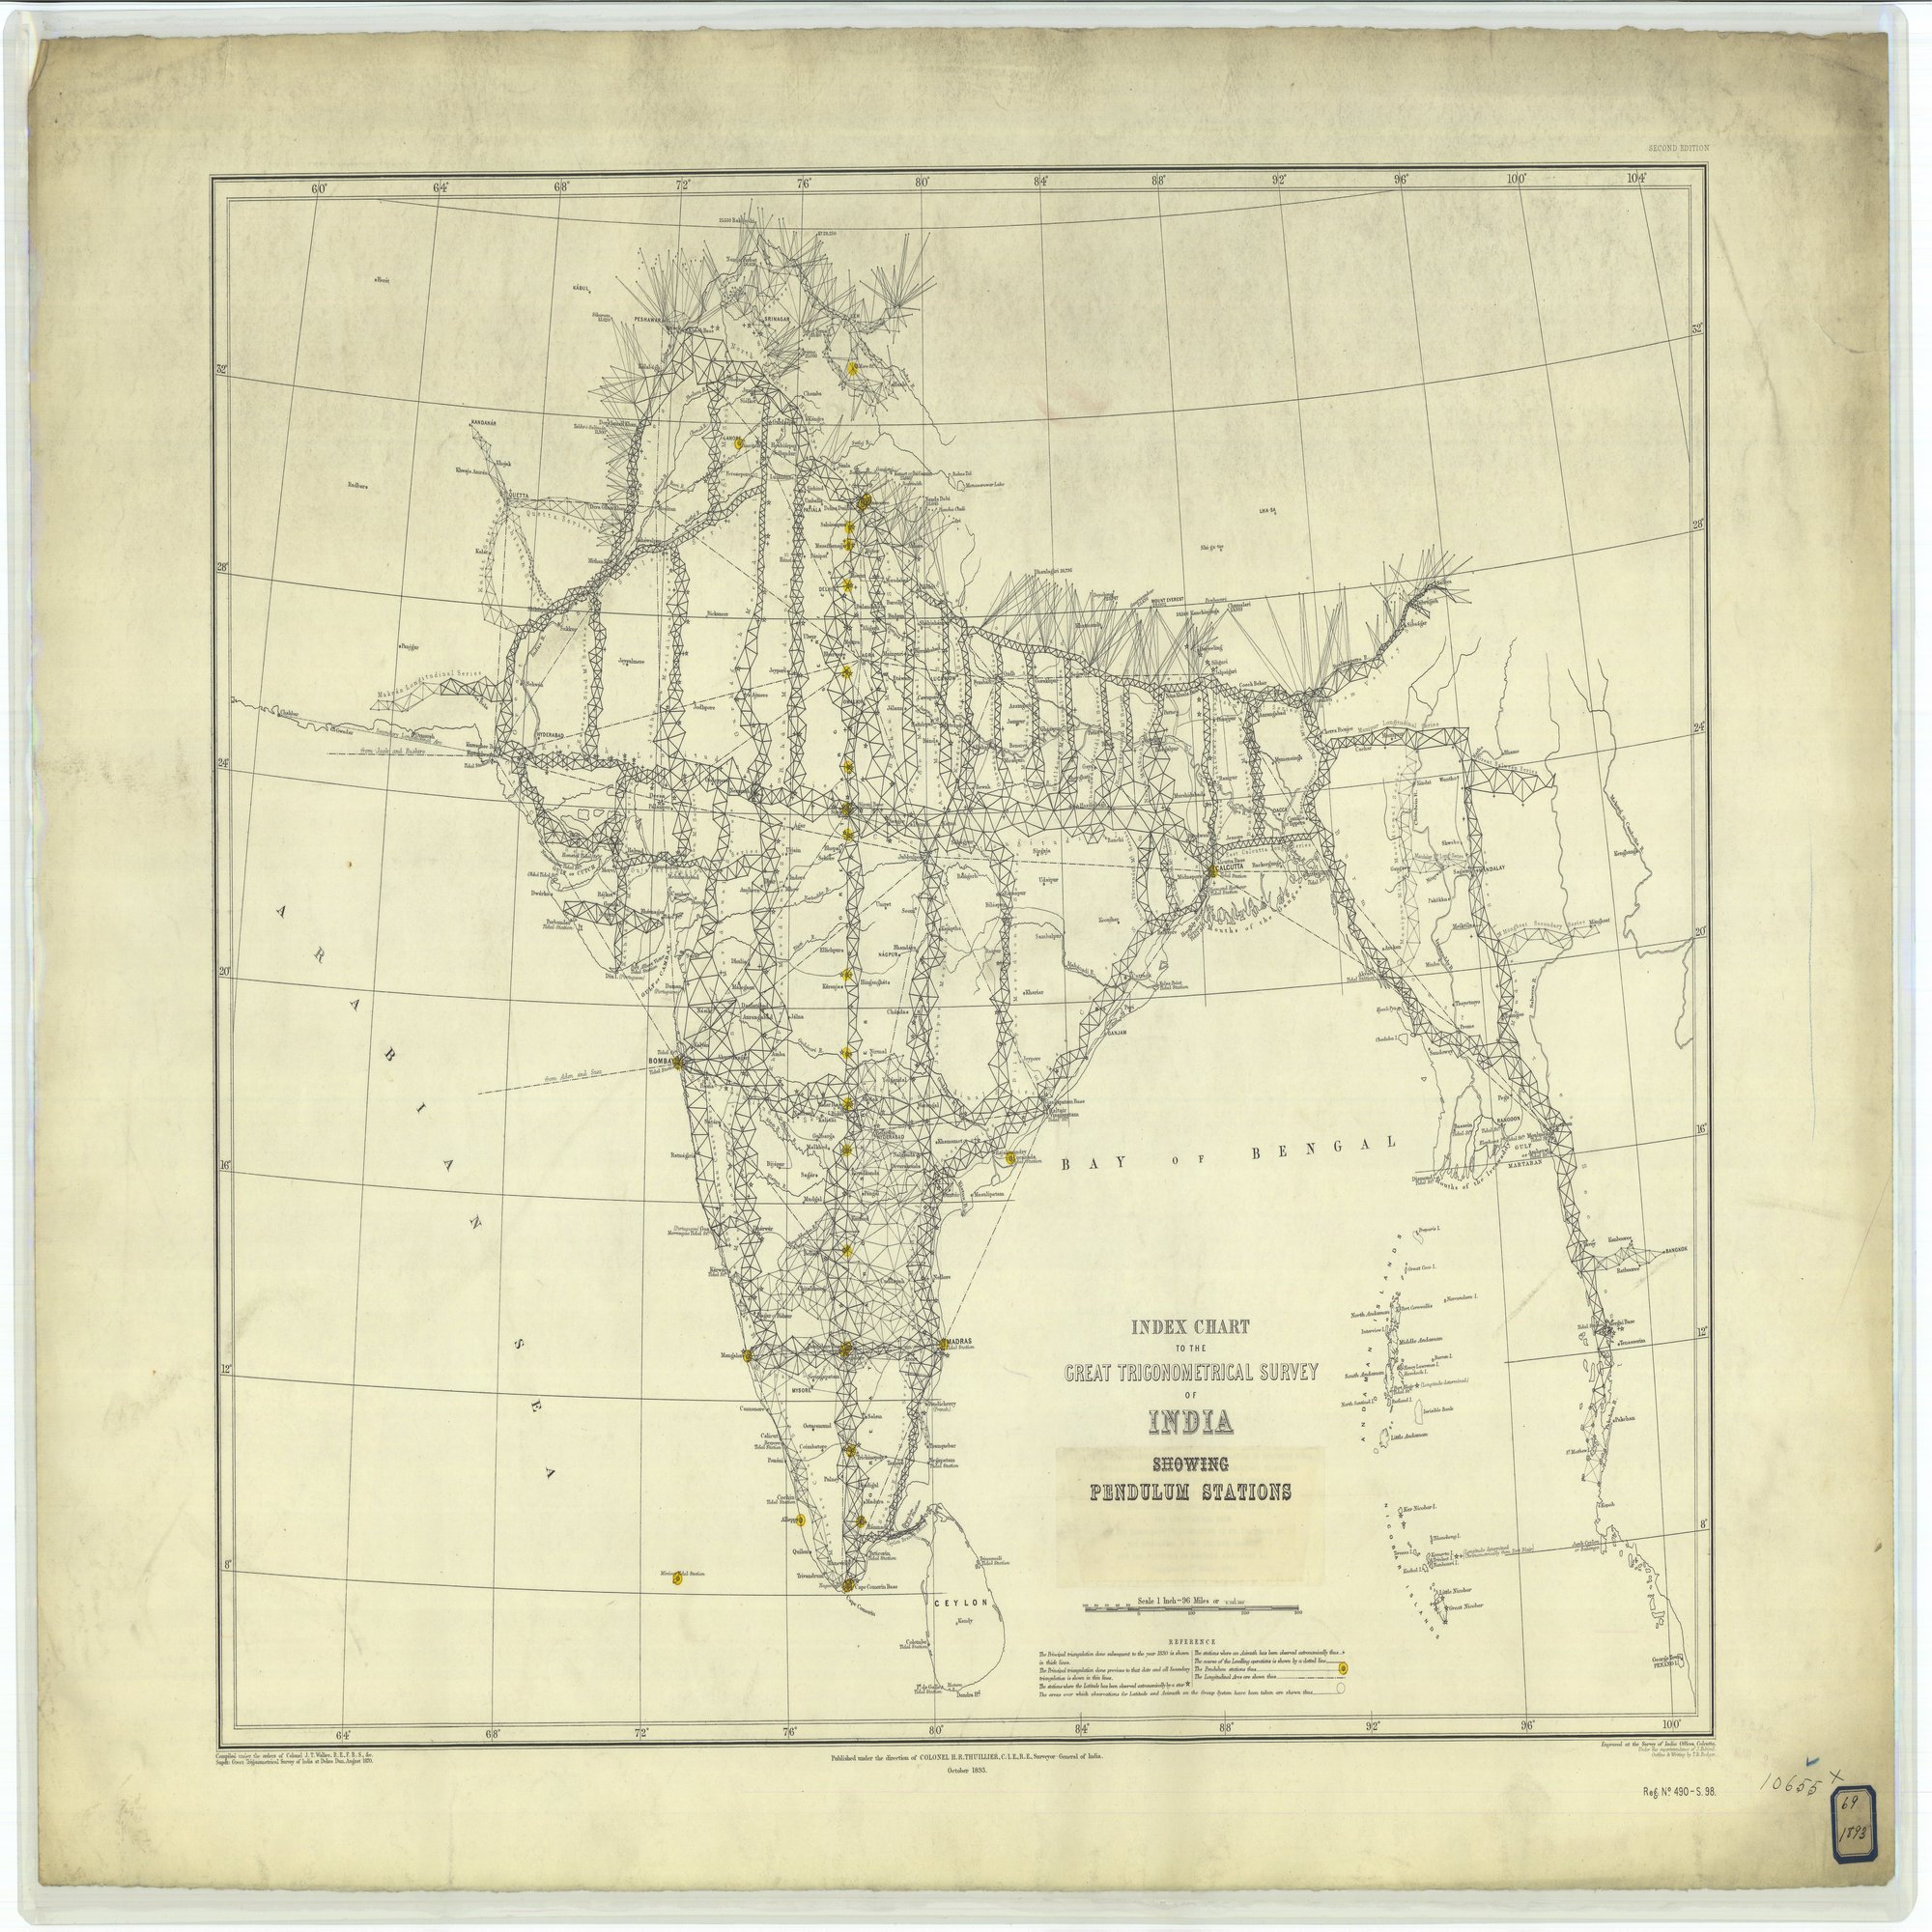 16 x 20 Glossy Nautical Map Printed on Metal Index Chart to the Great Trigonometrical Survey of India Showing Pendulum Stations 1893 NOAA 22a